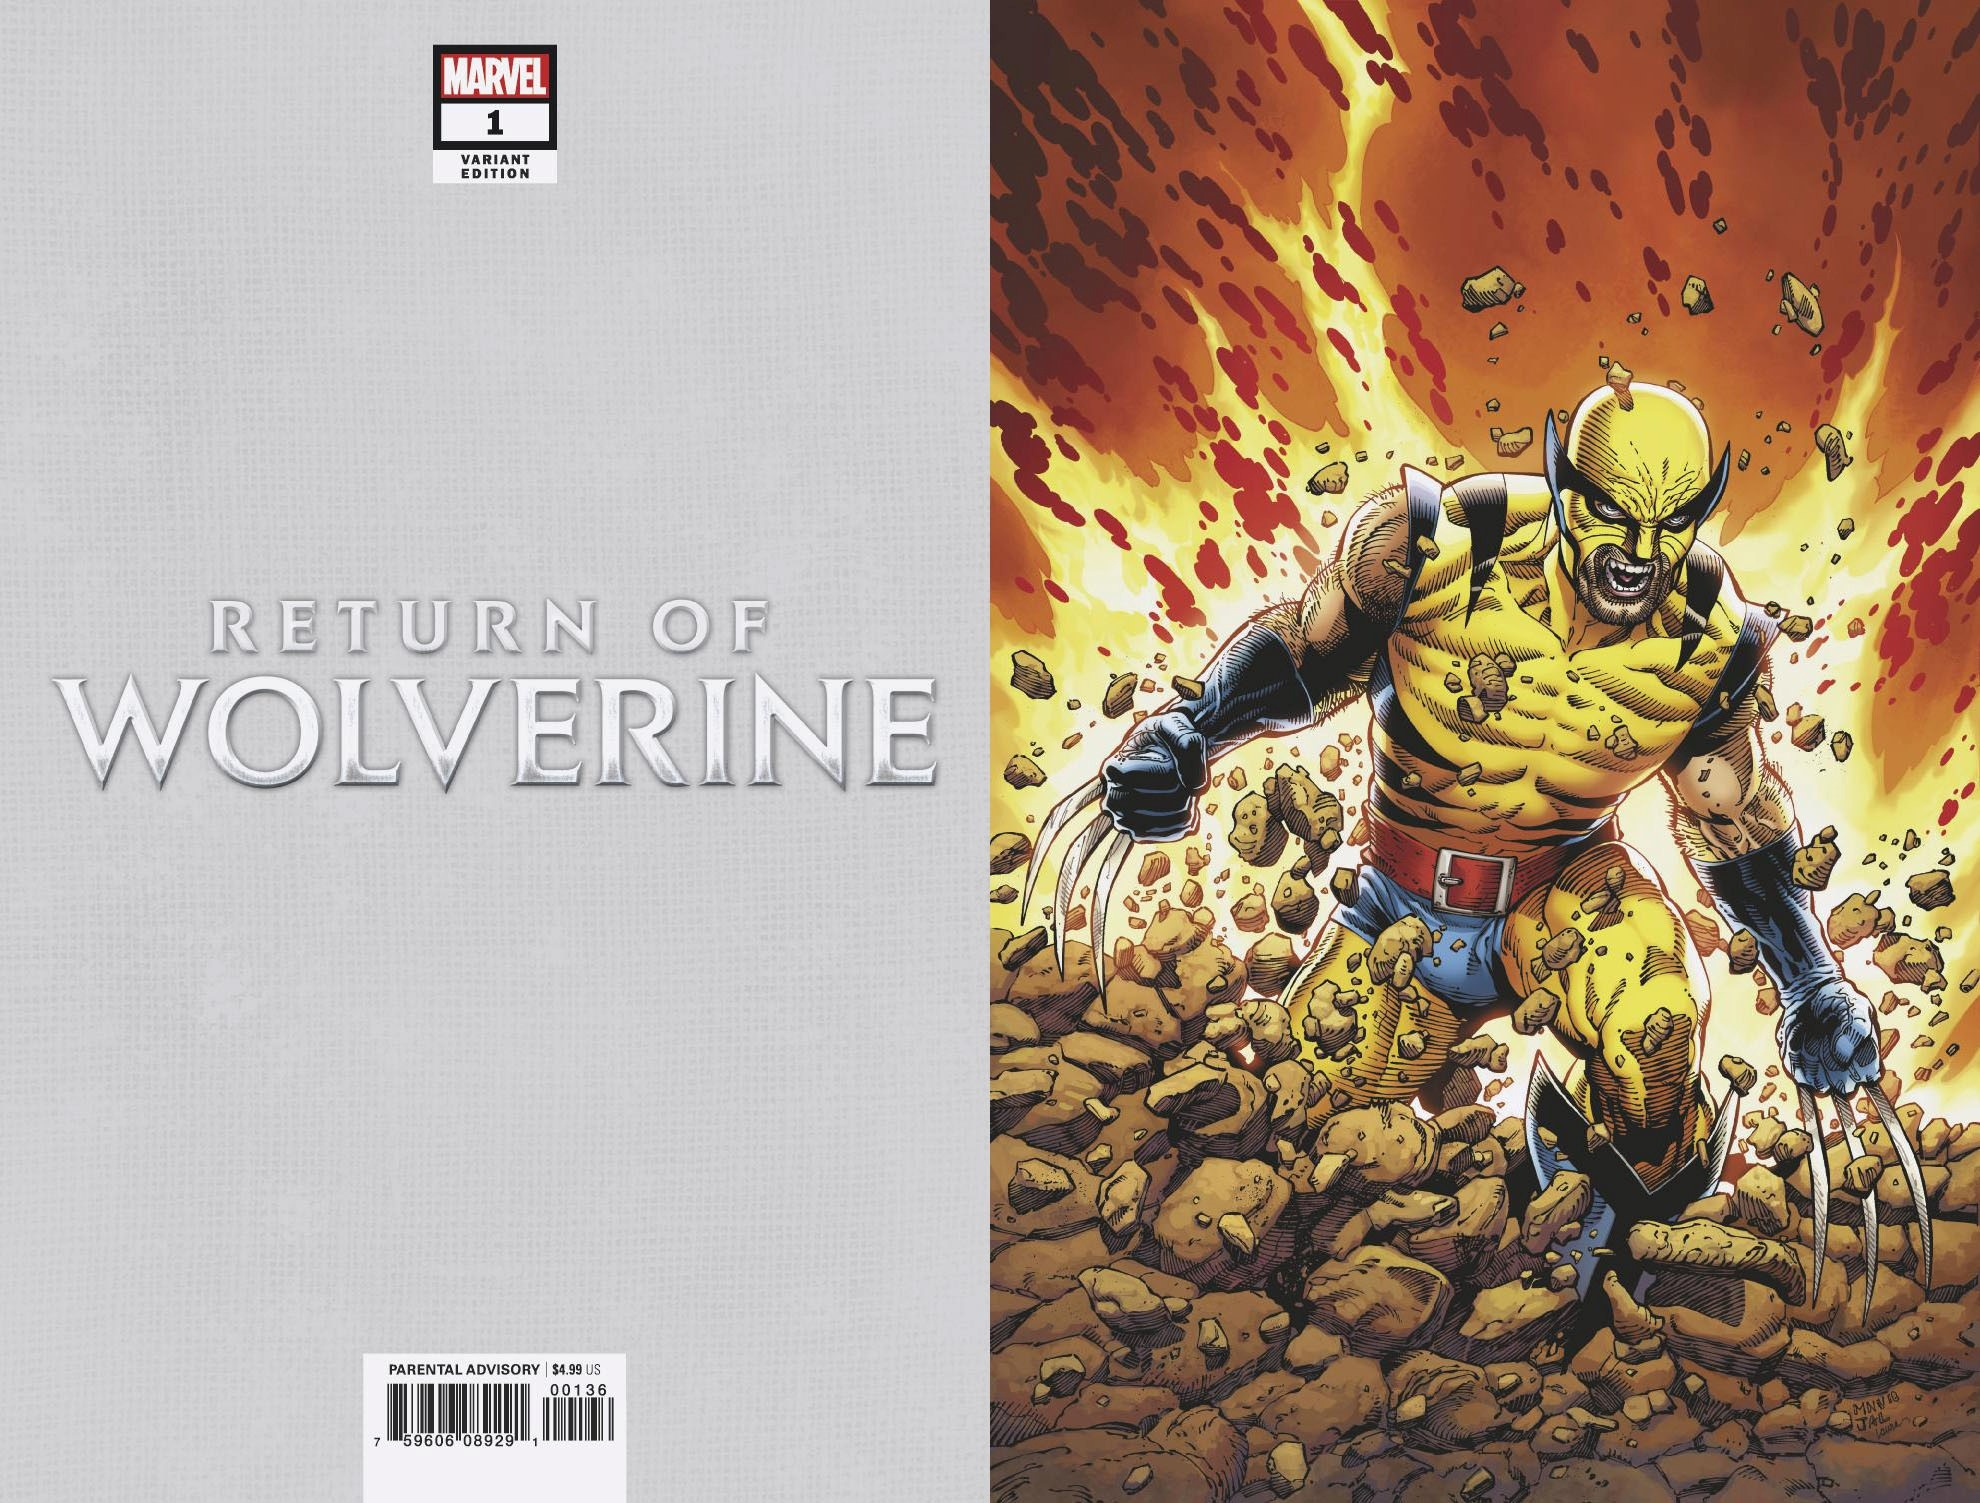 RETURN OF WOLVERINE #1 (OF 5) MCNIVEN ORIG WOLVERINE VIRGIN